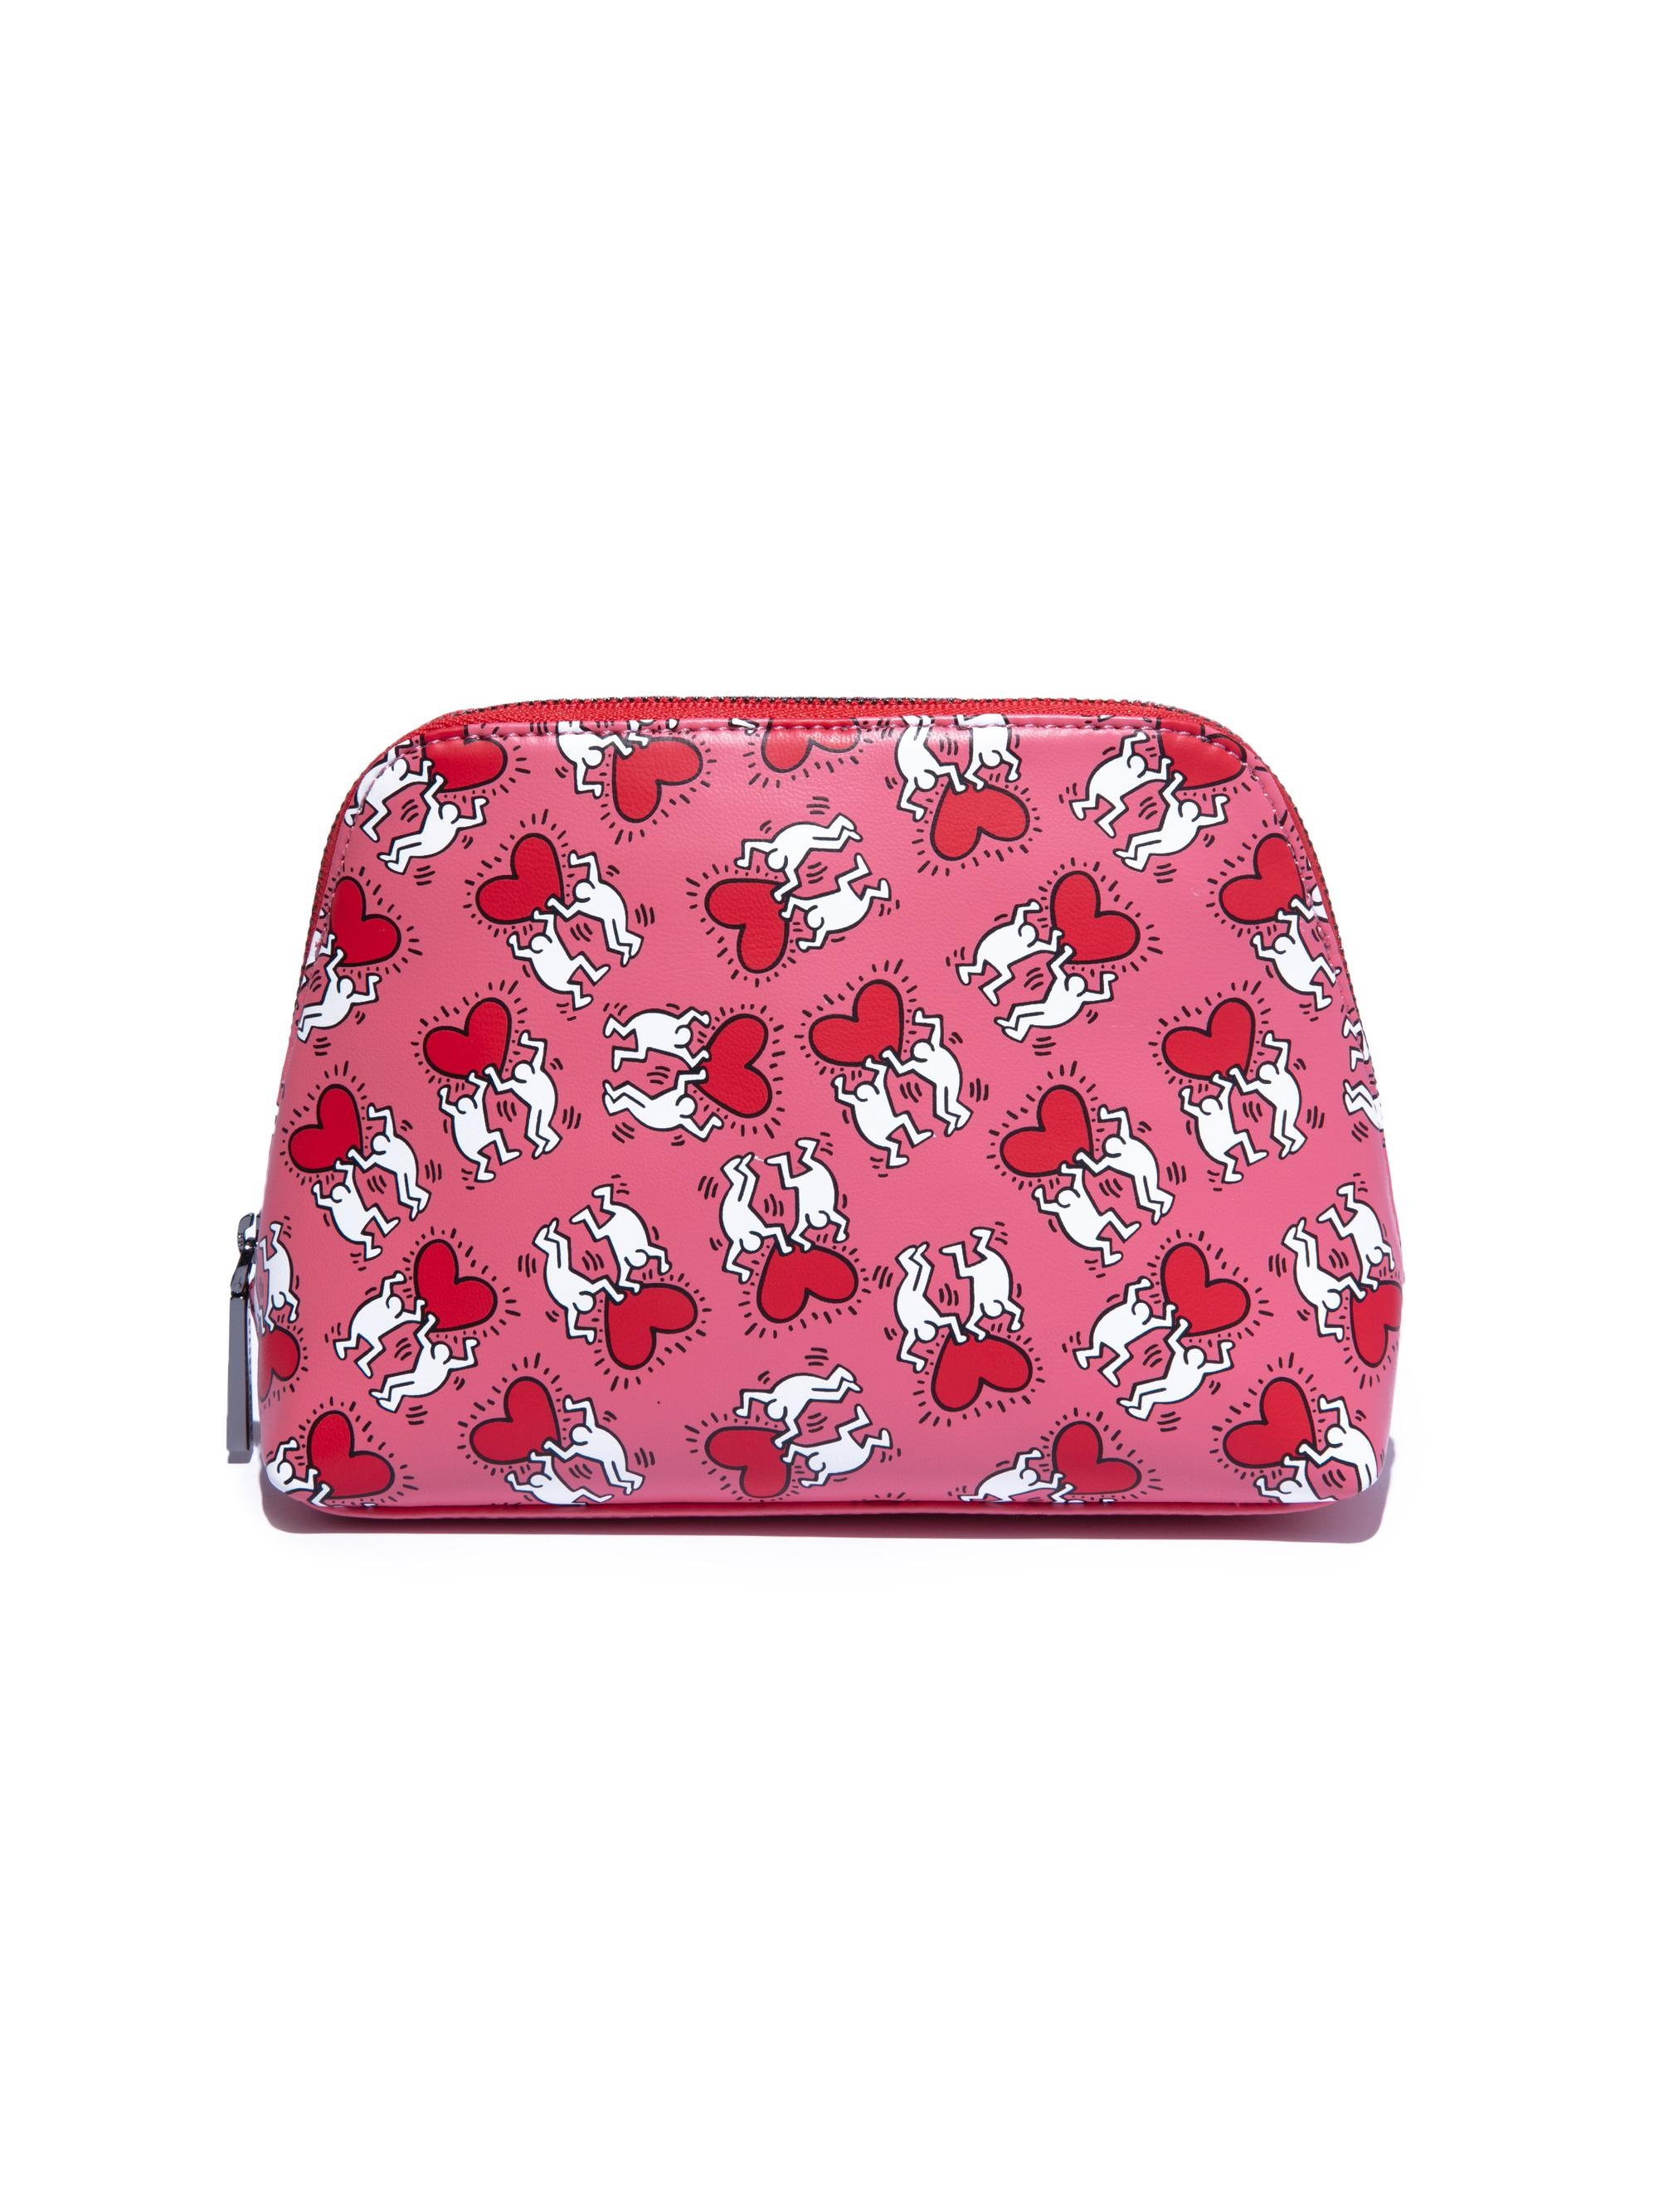 alice-olivia-holding-heart-Keith-Haring-X-Ao-Cosmetic-Case.jpeg